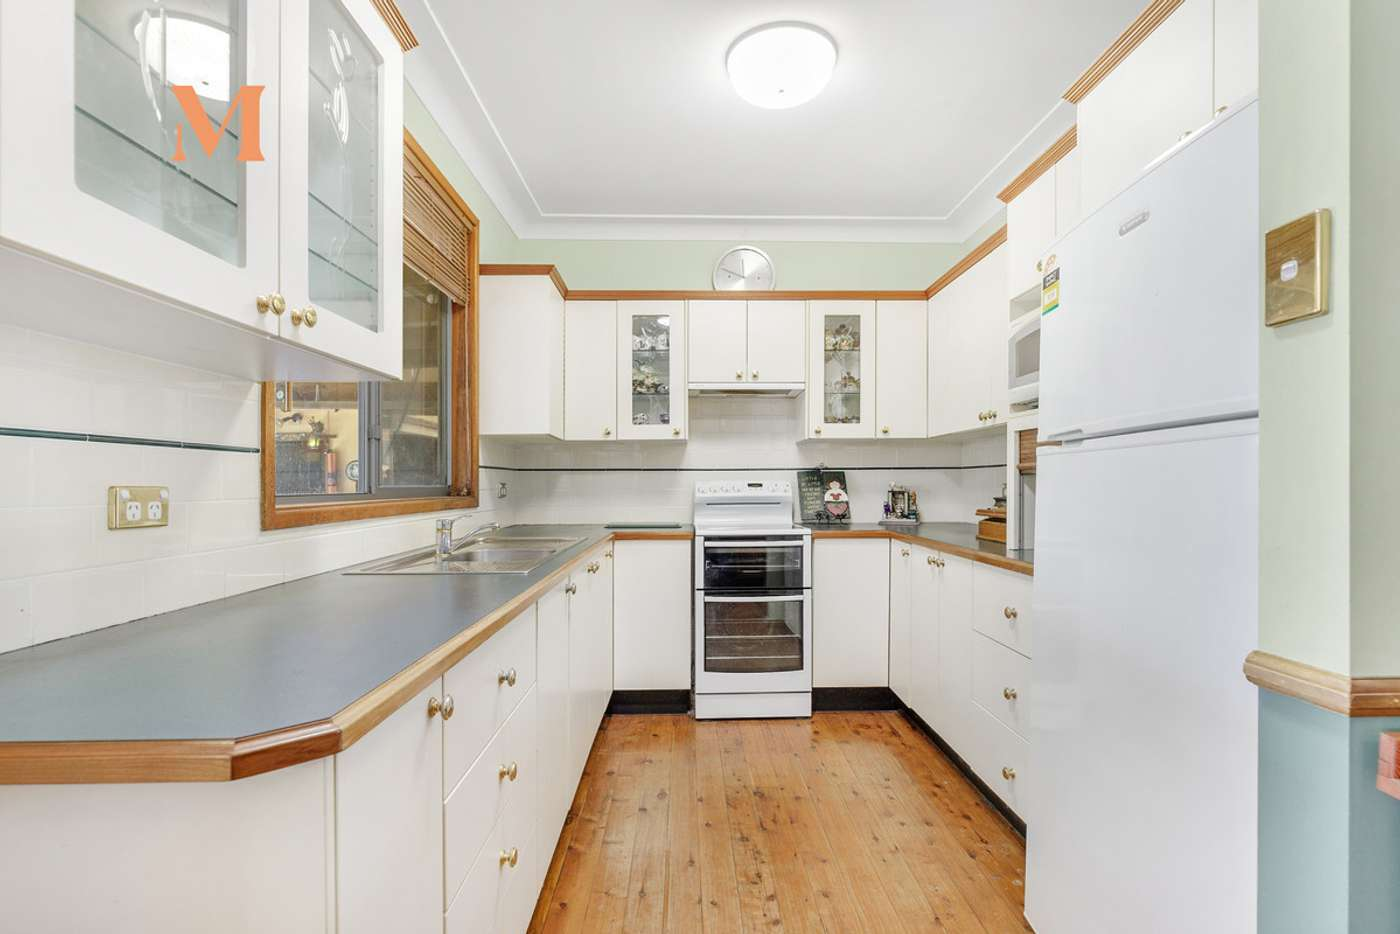 Sixth view of Homely house listing, 14 Turnbull Street, Edgeworth NSW 2285